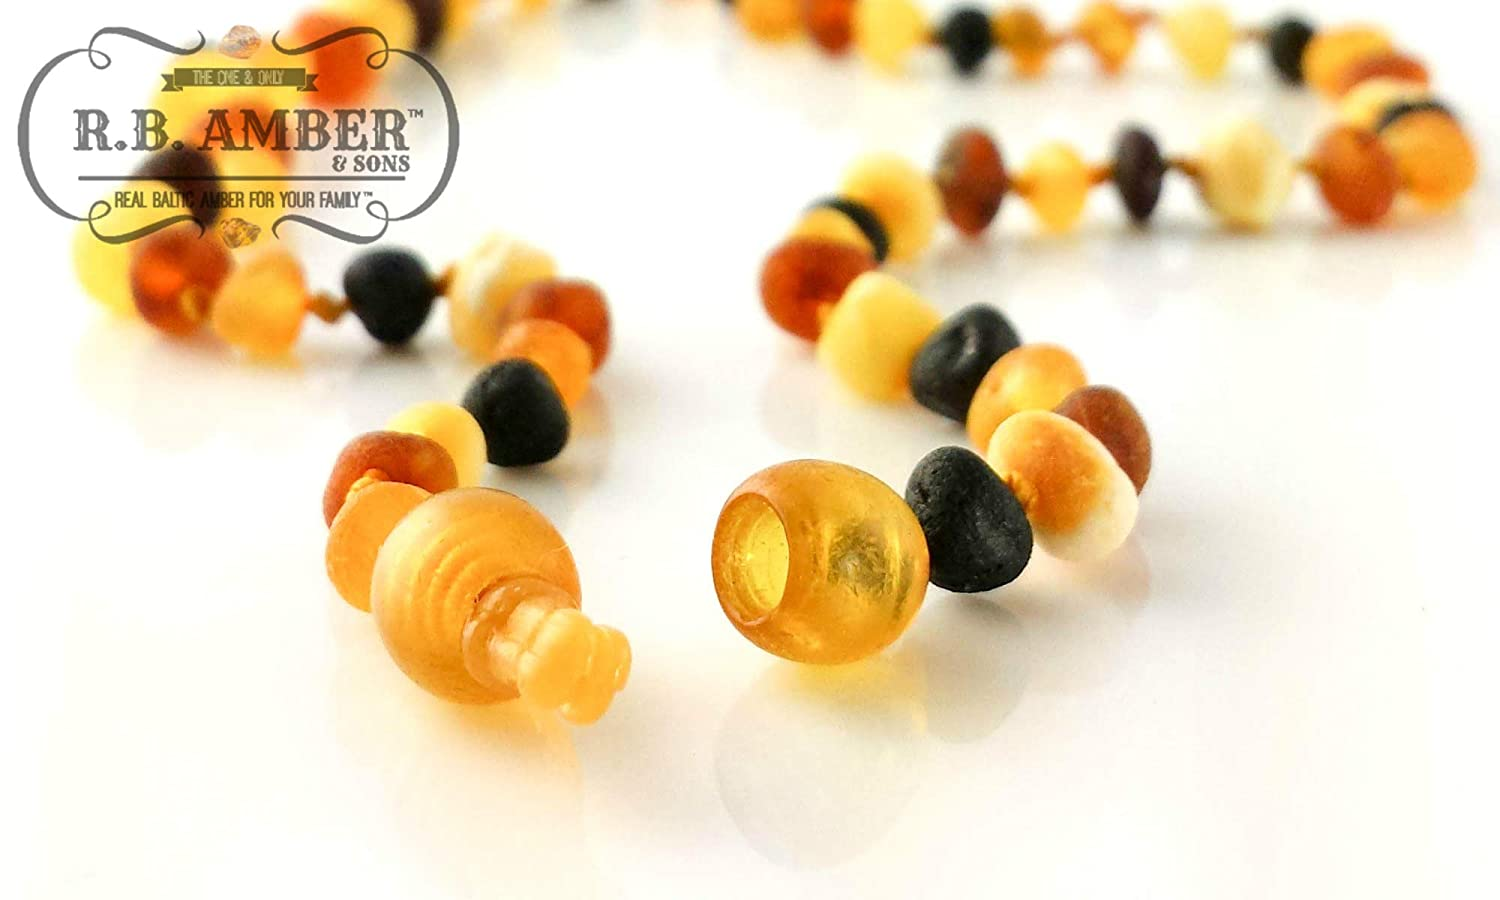 14-15 inches, Unpolished Rainbow POP CLASP Premium Grade Amber Teething Necklace Hand Crafted Baltic Amber Teething Necklace in 3 Sizes Teething Relief for Baby and Child